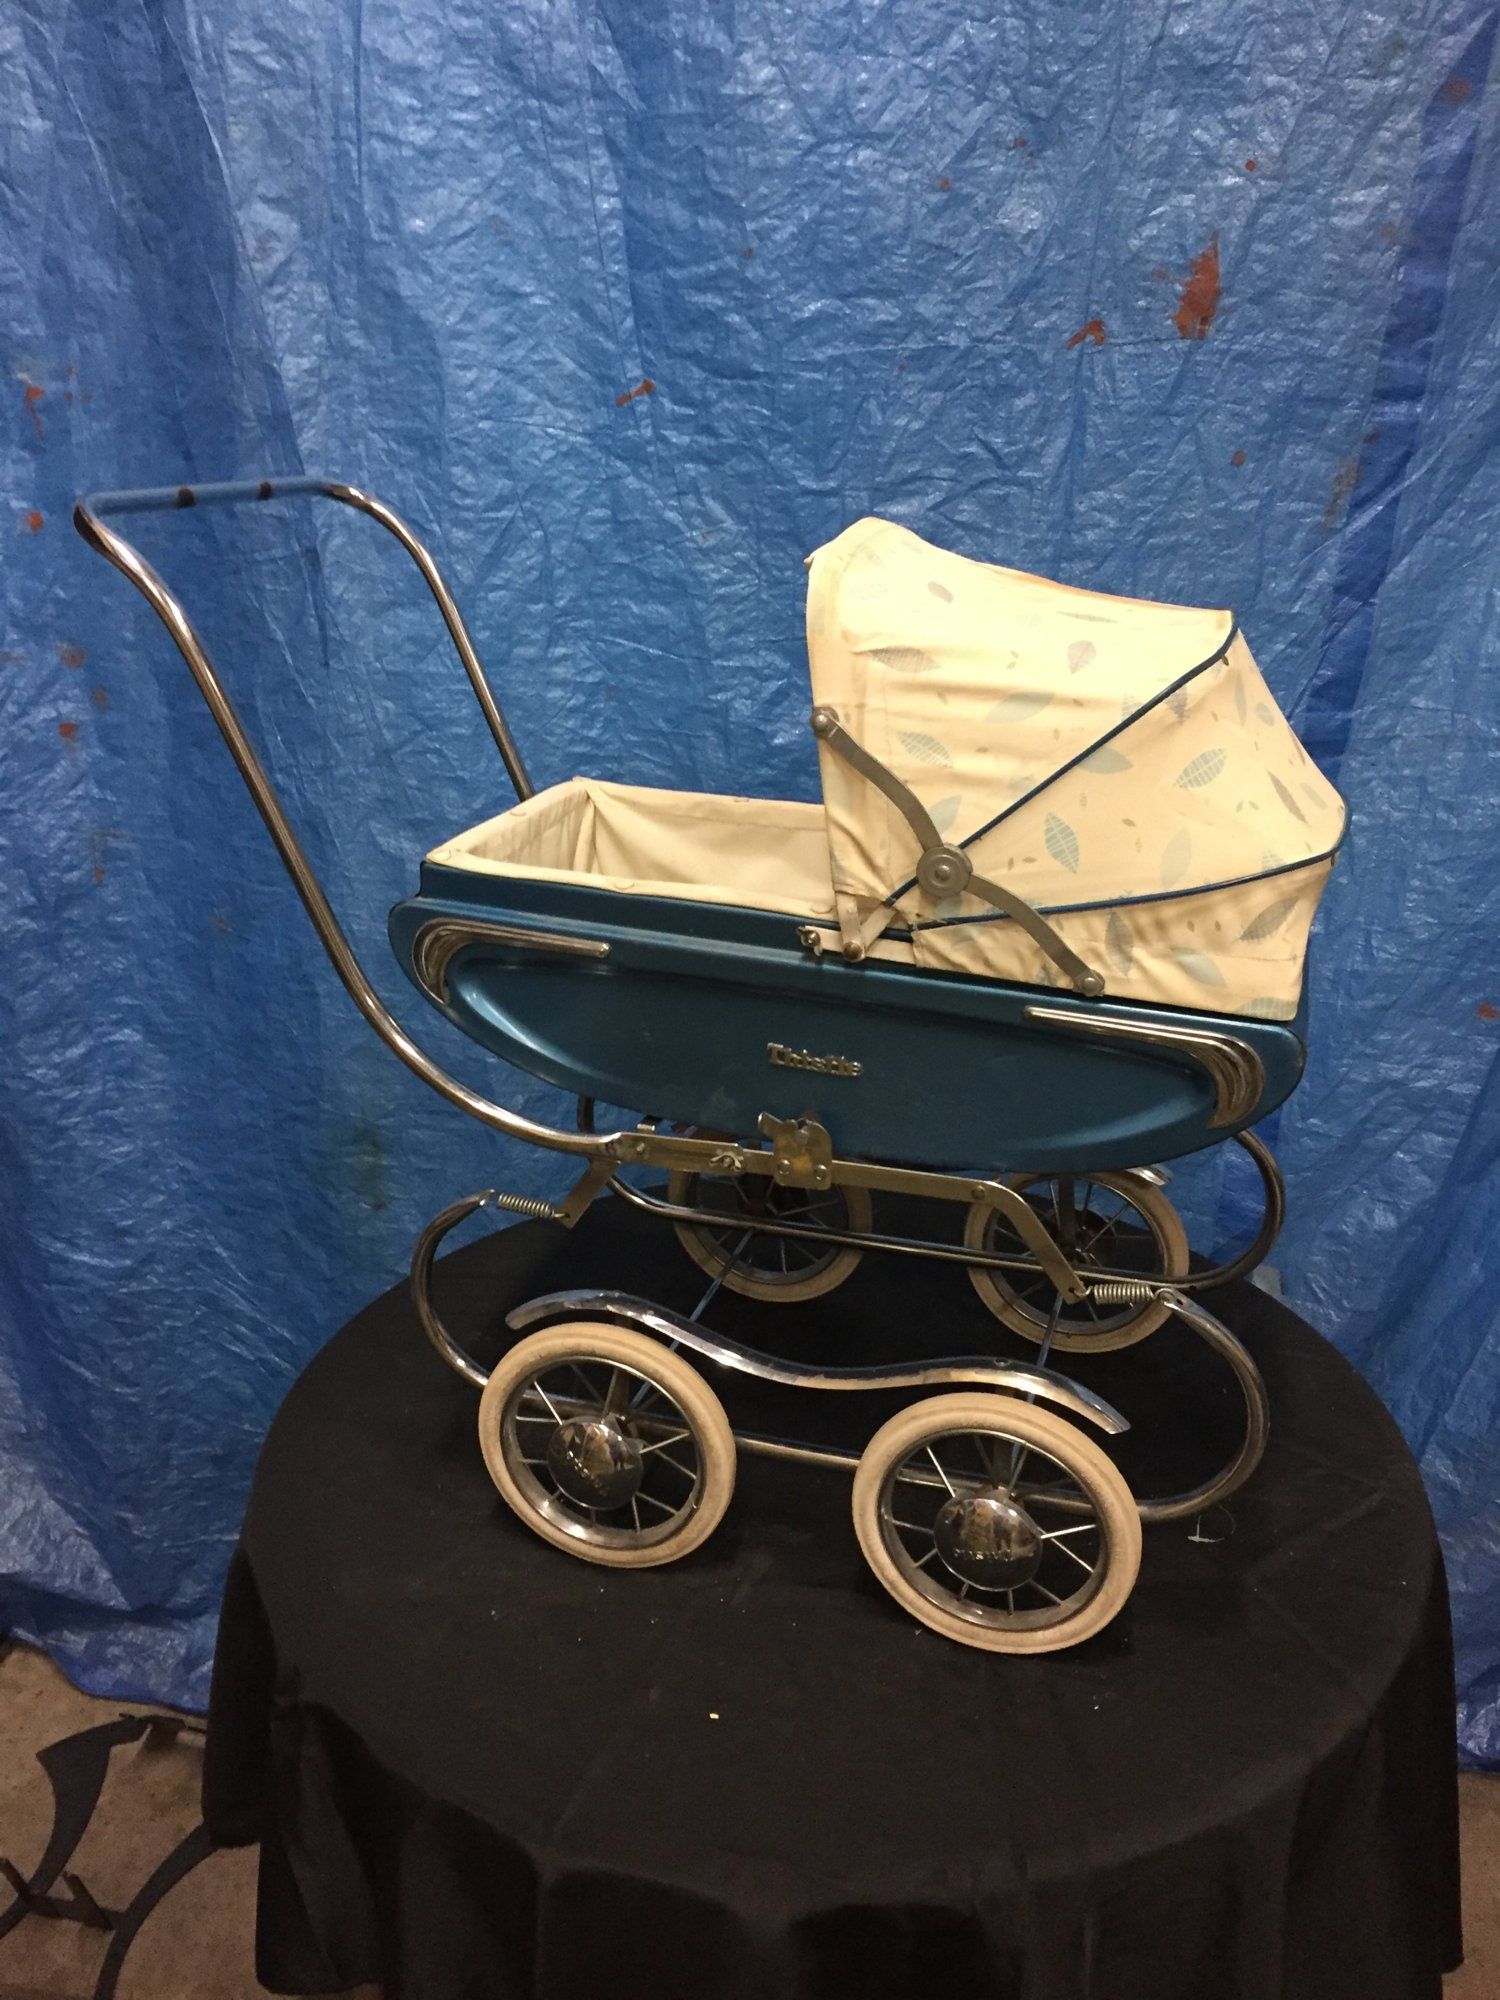 Vintage Gendron Doll Buggy 1960's - $75.jpg